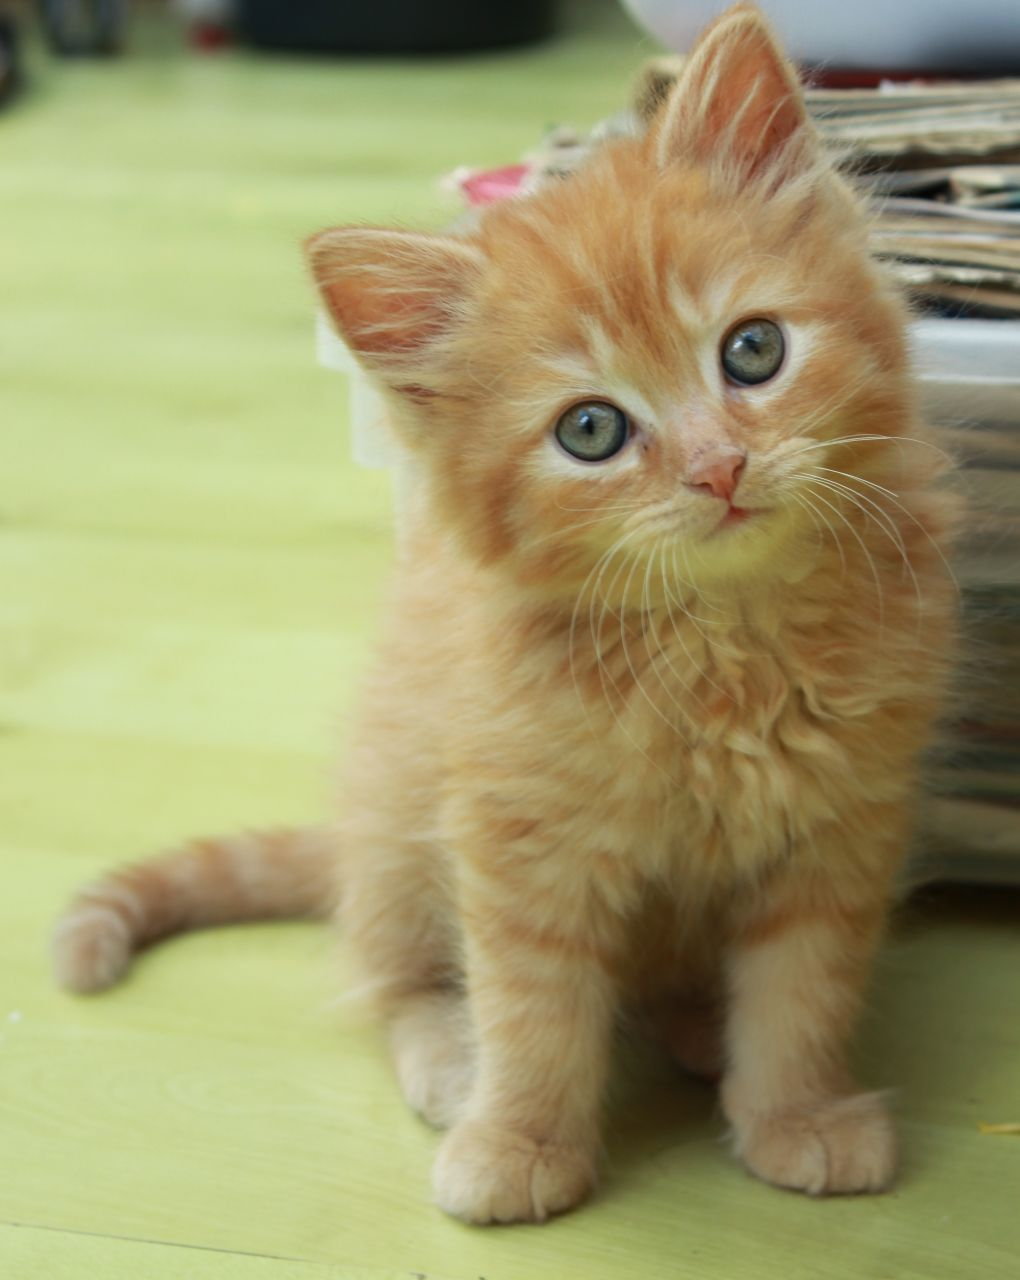 Cute Kittens For Sale London South East London Pets4homes Gatos Trucos